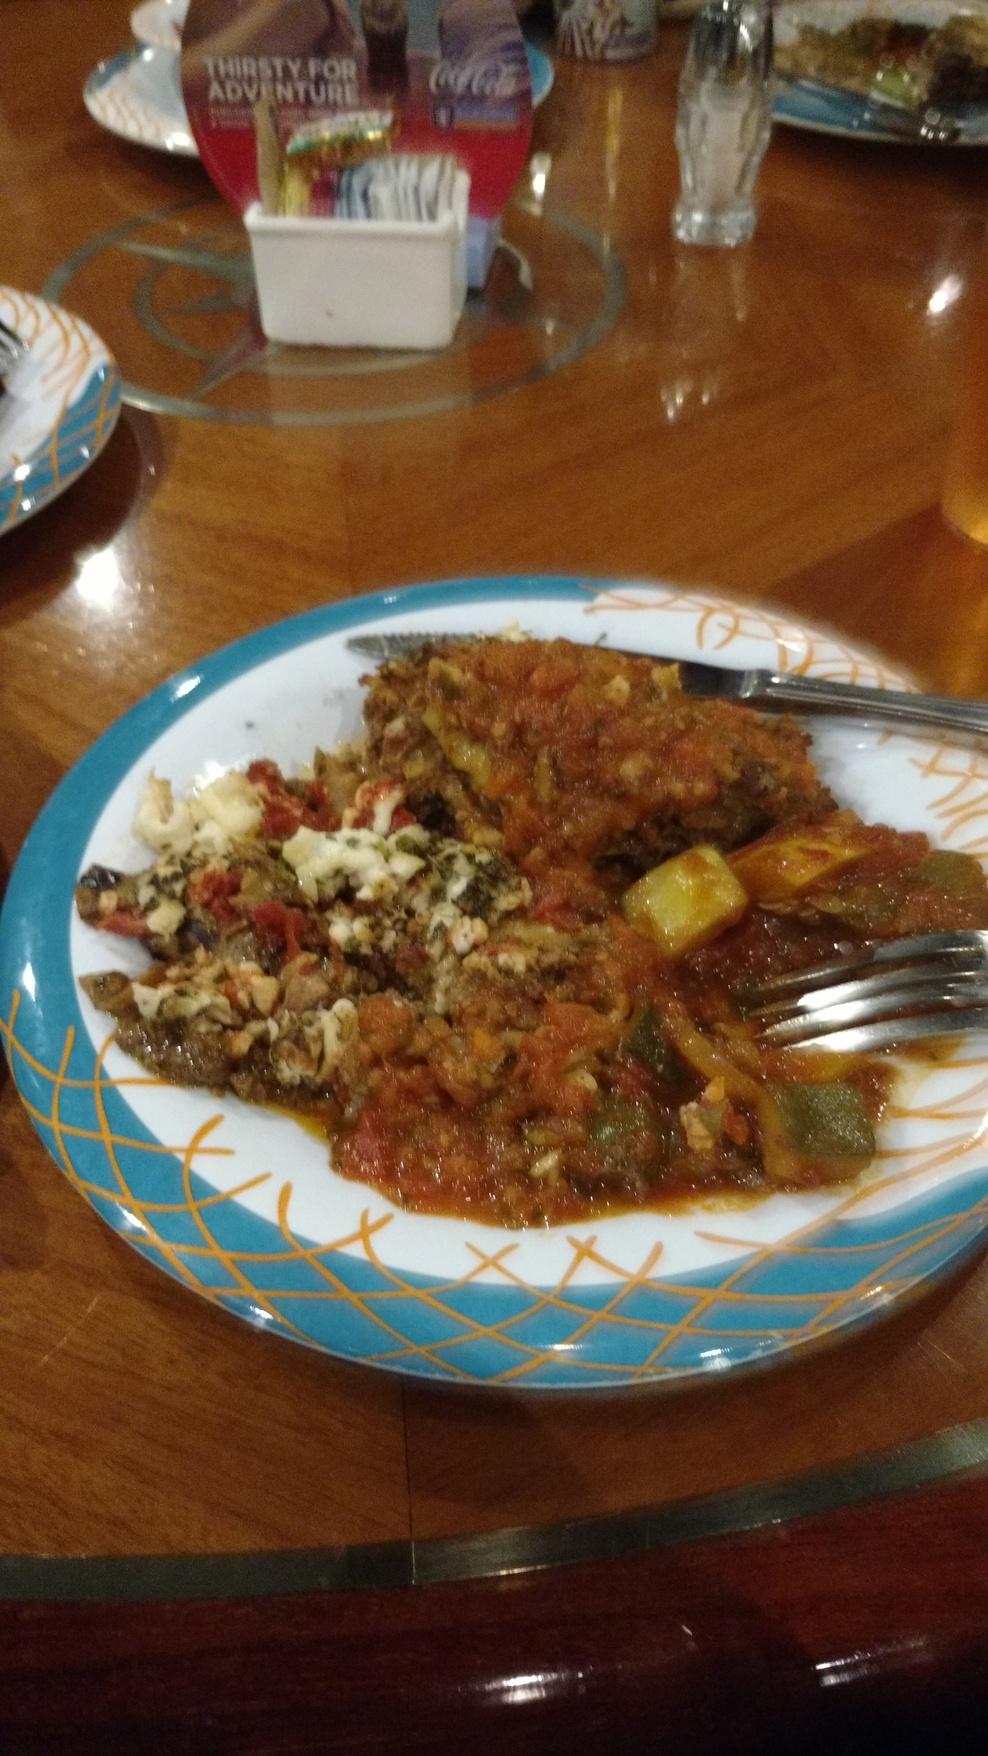 Windjammer Lasagna. Undercooked eggplant parmesan with unmelted cheese.